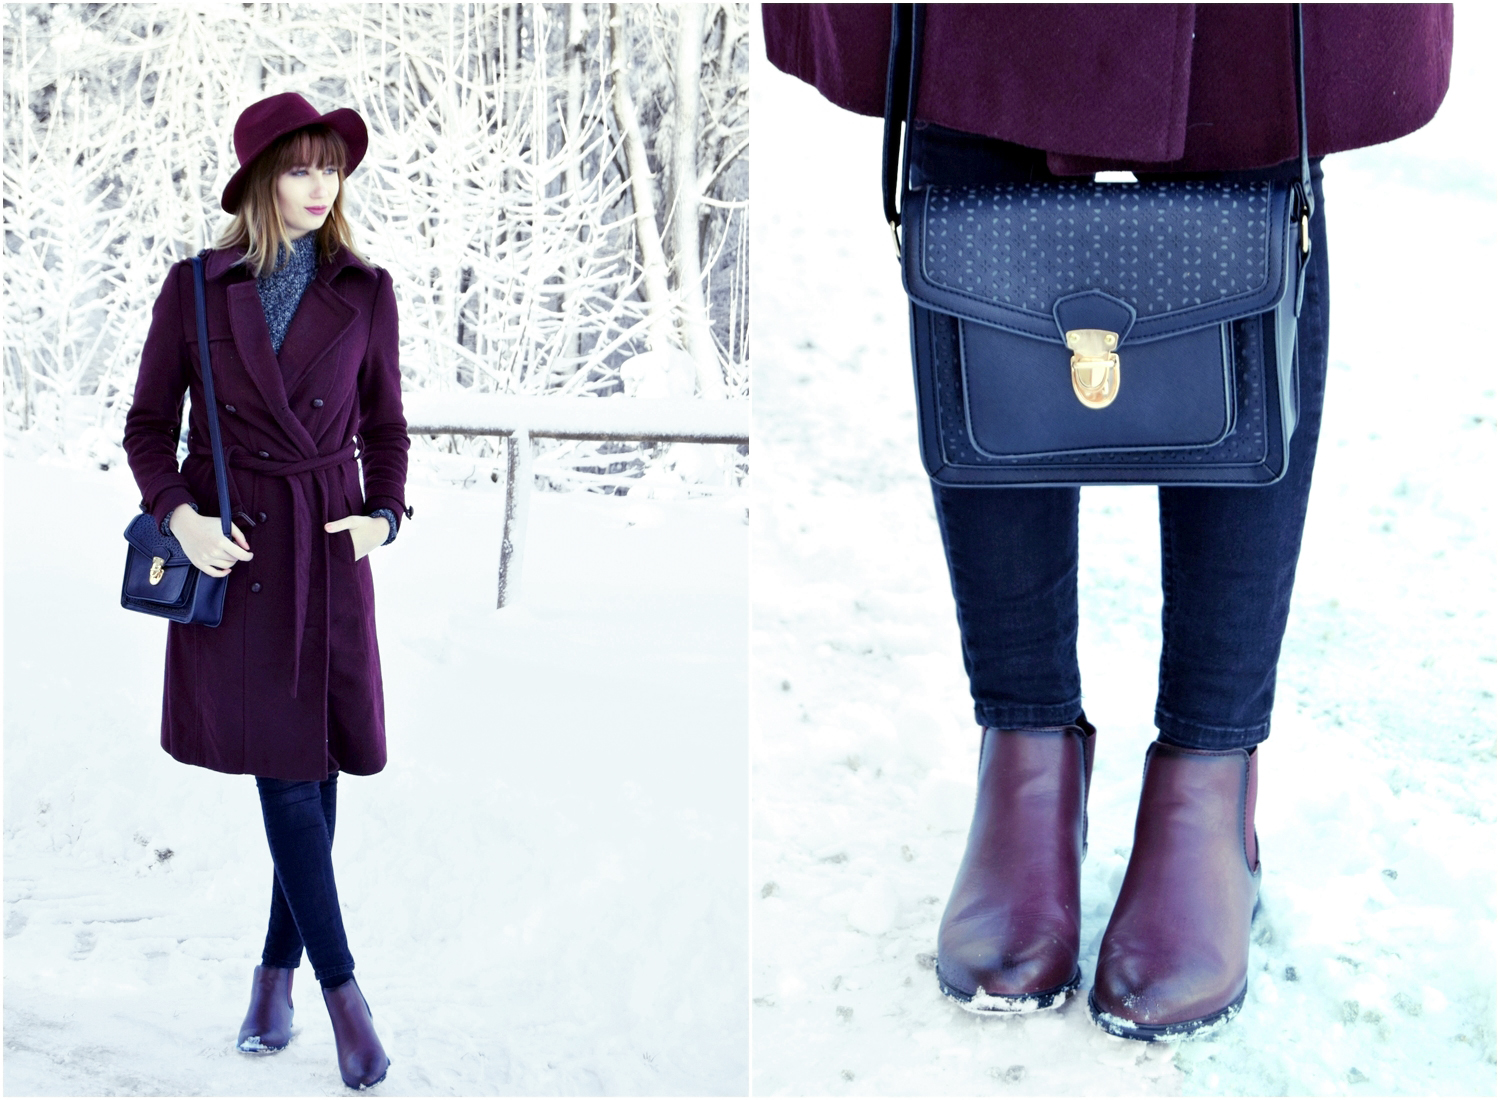 Winter_outfit_bordeaux_snow_Zalabell_fashion_51